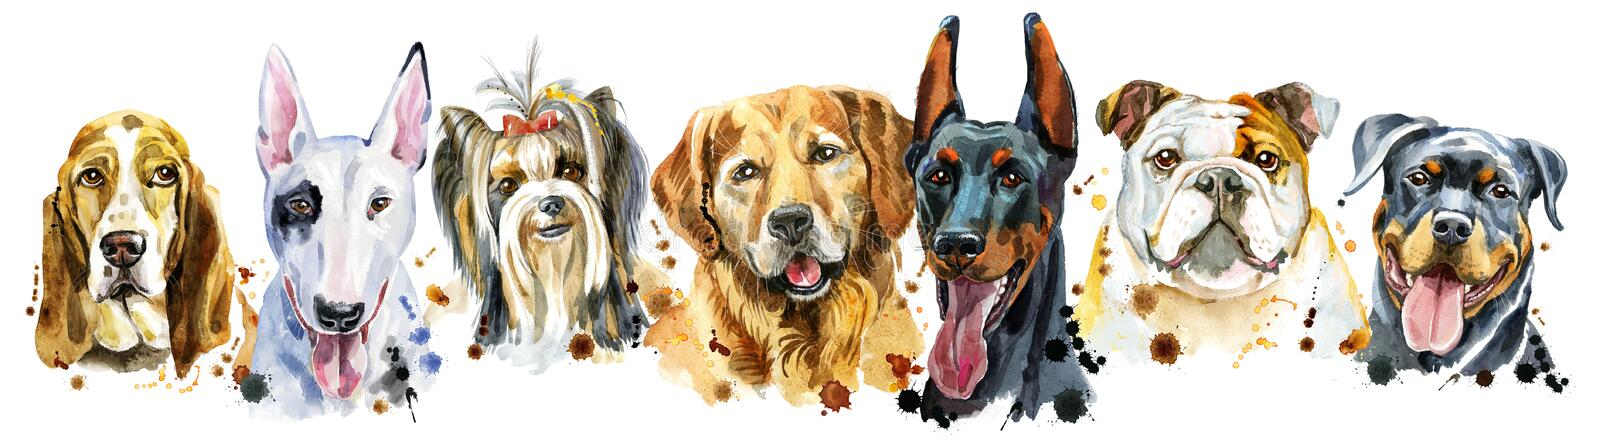 Border from watercolor portraits of dogs for decoration stock image